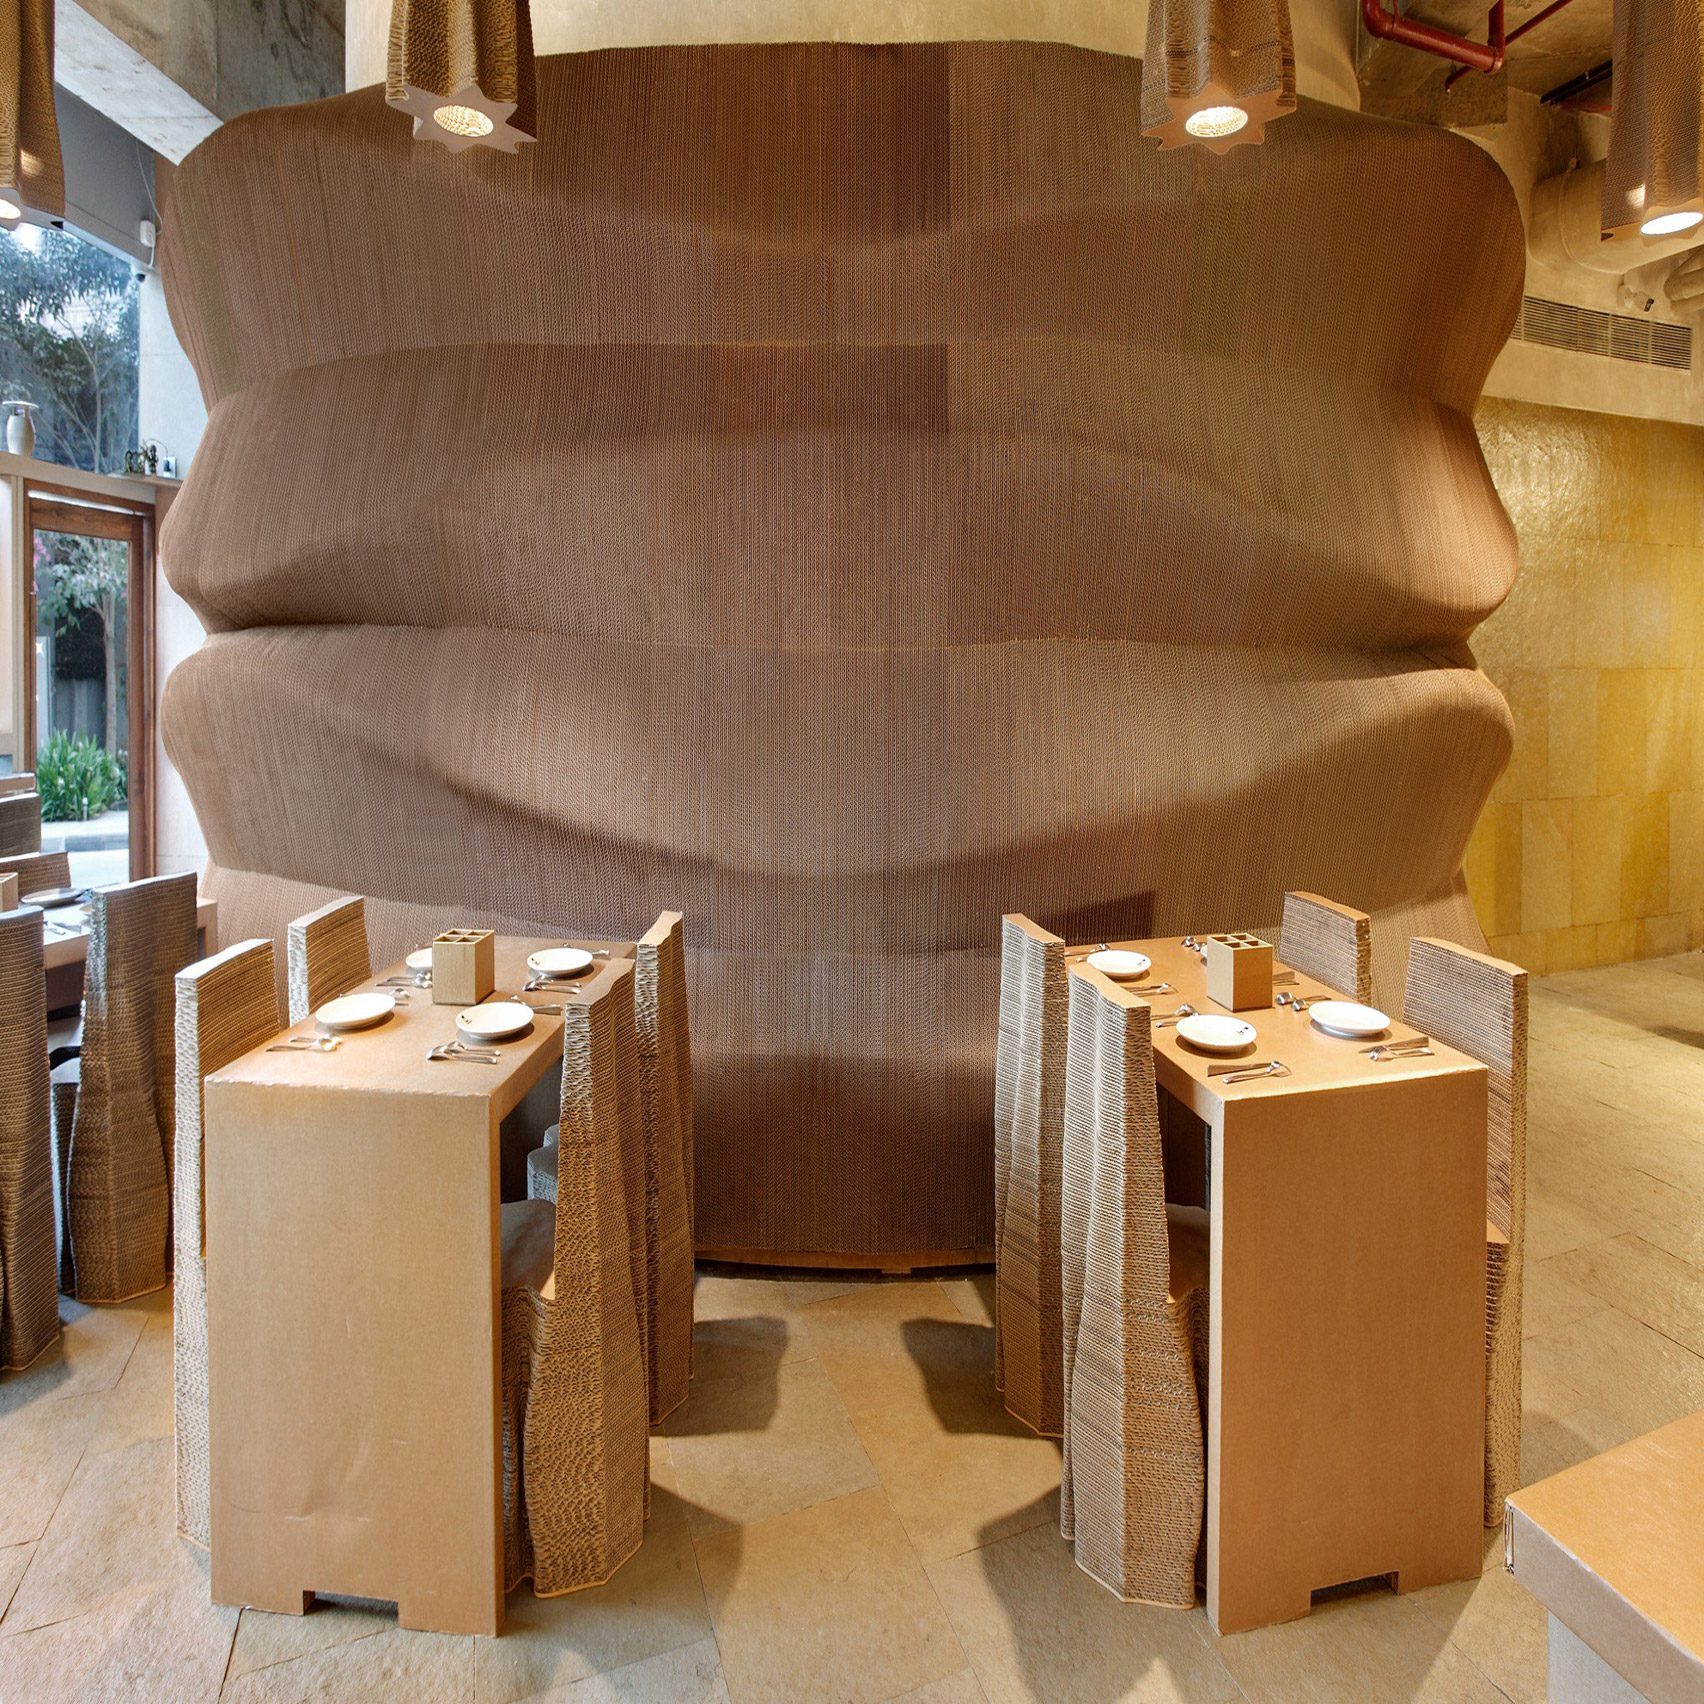 Cardboard cafe by Nudes in Mumbai is made entirely from recycled cardboard